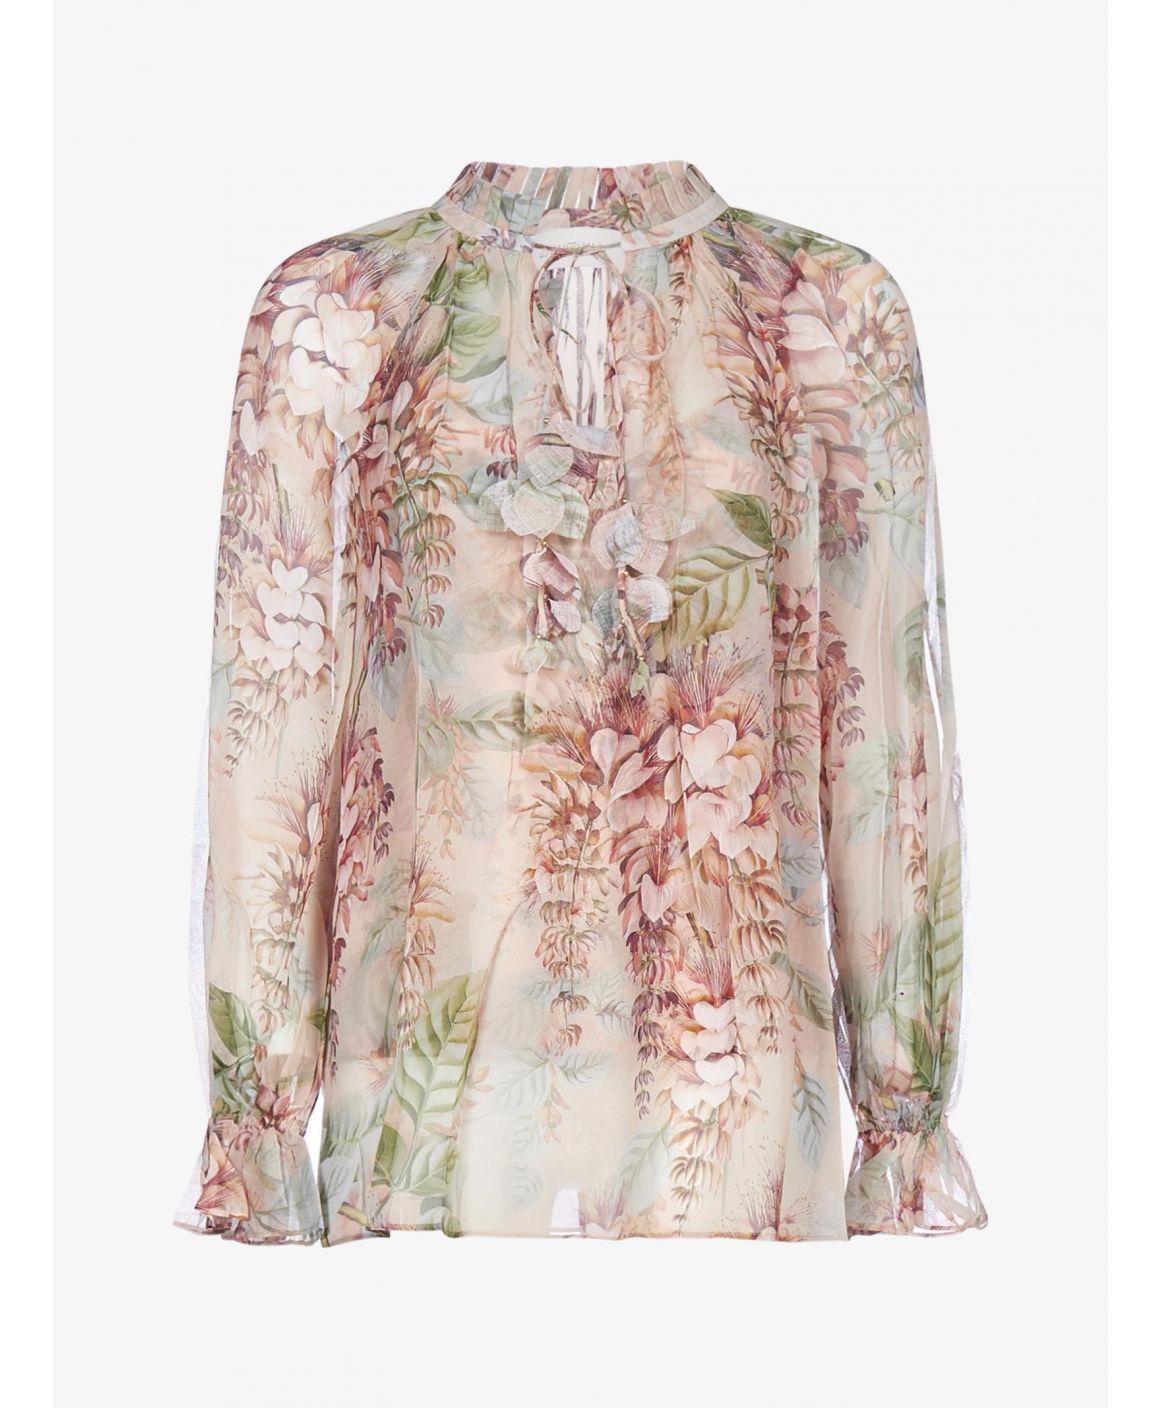 Candescent floral print silk blouse